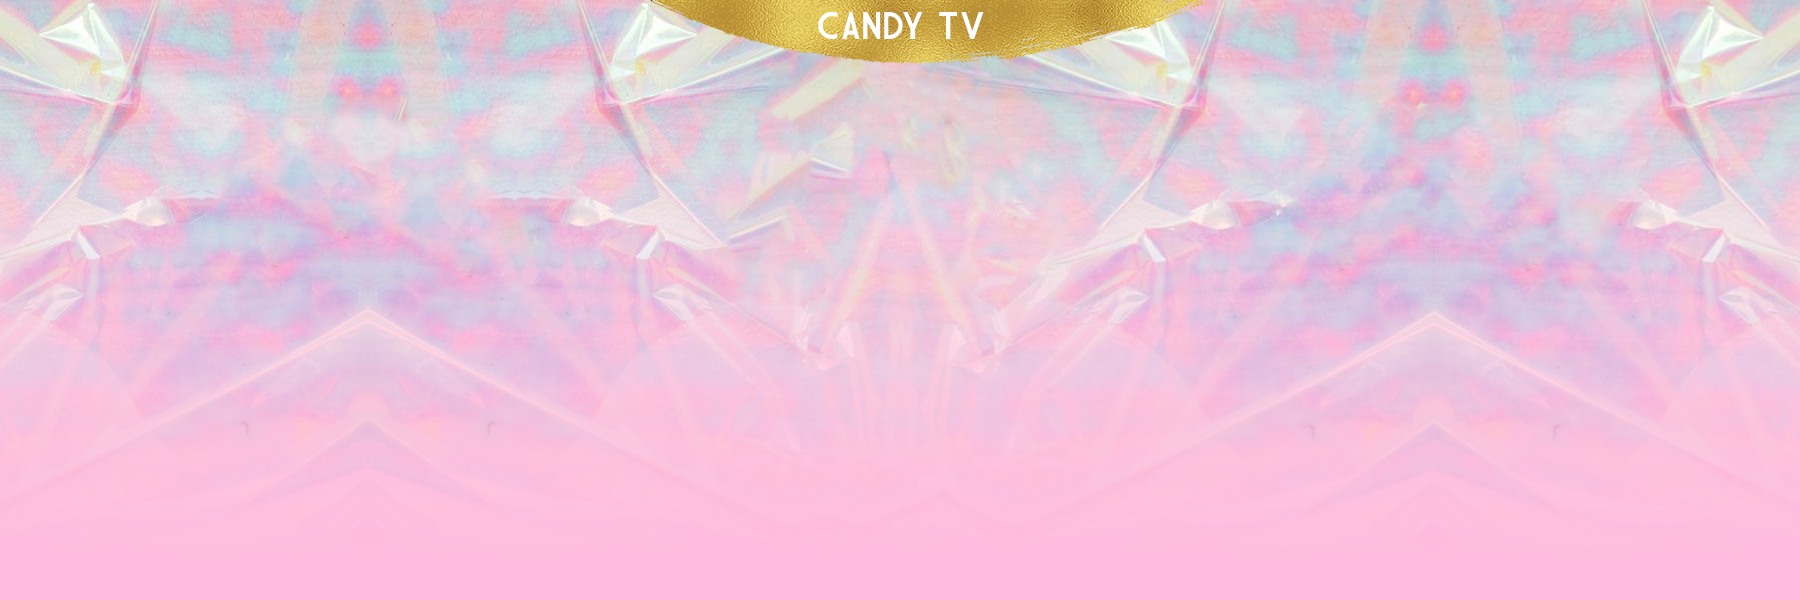 dreamcandy-banner1.png